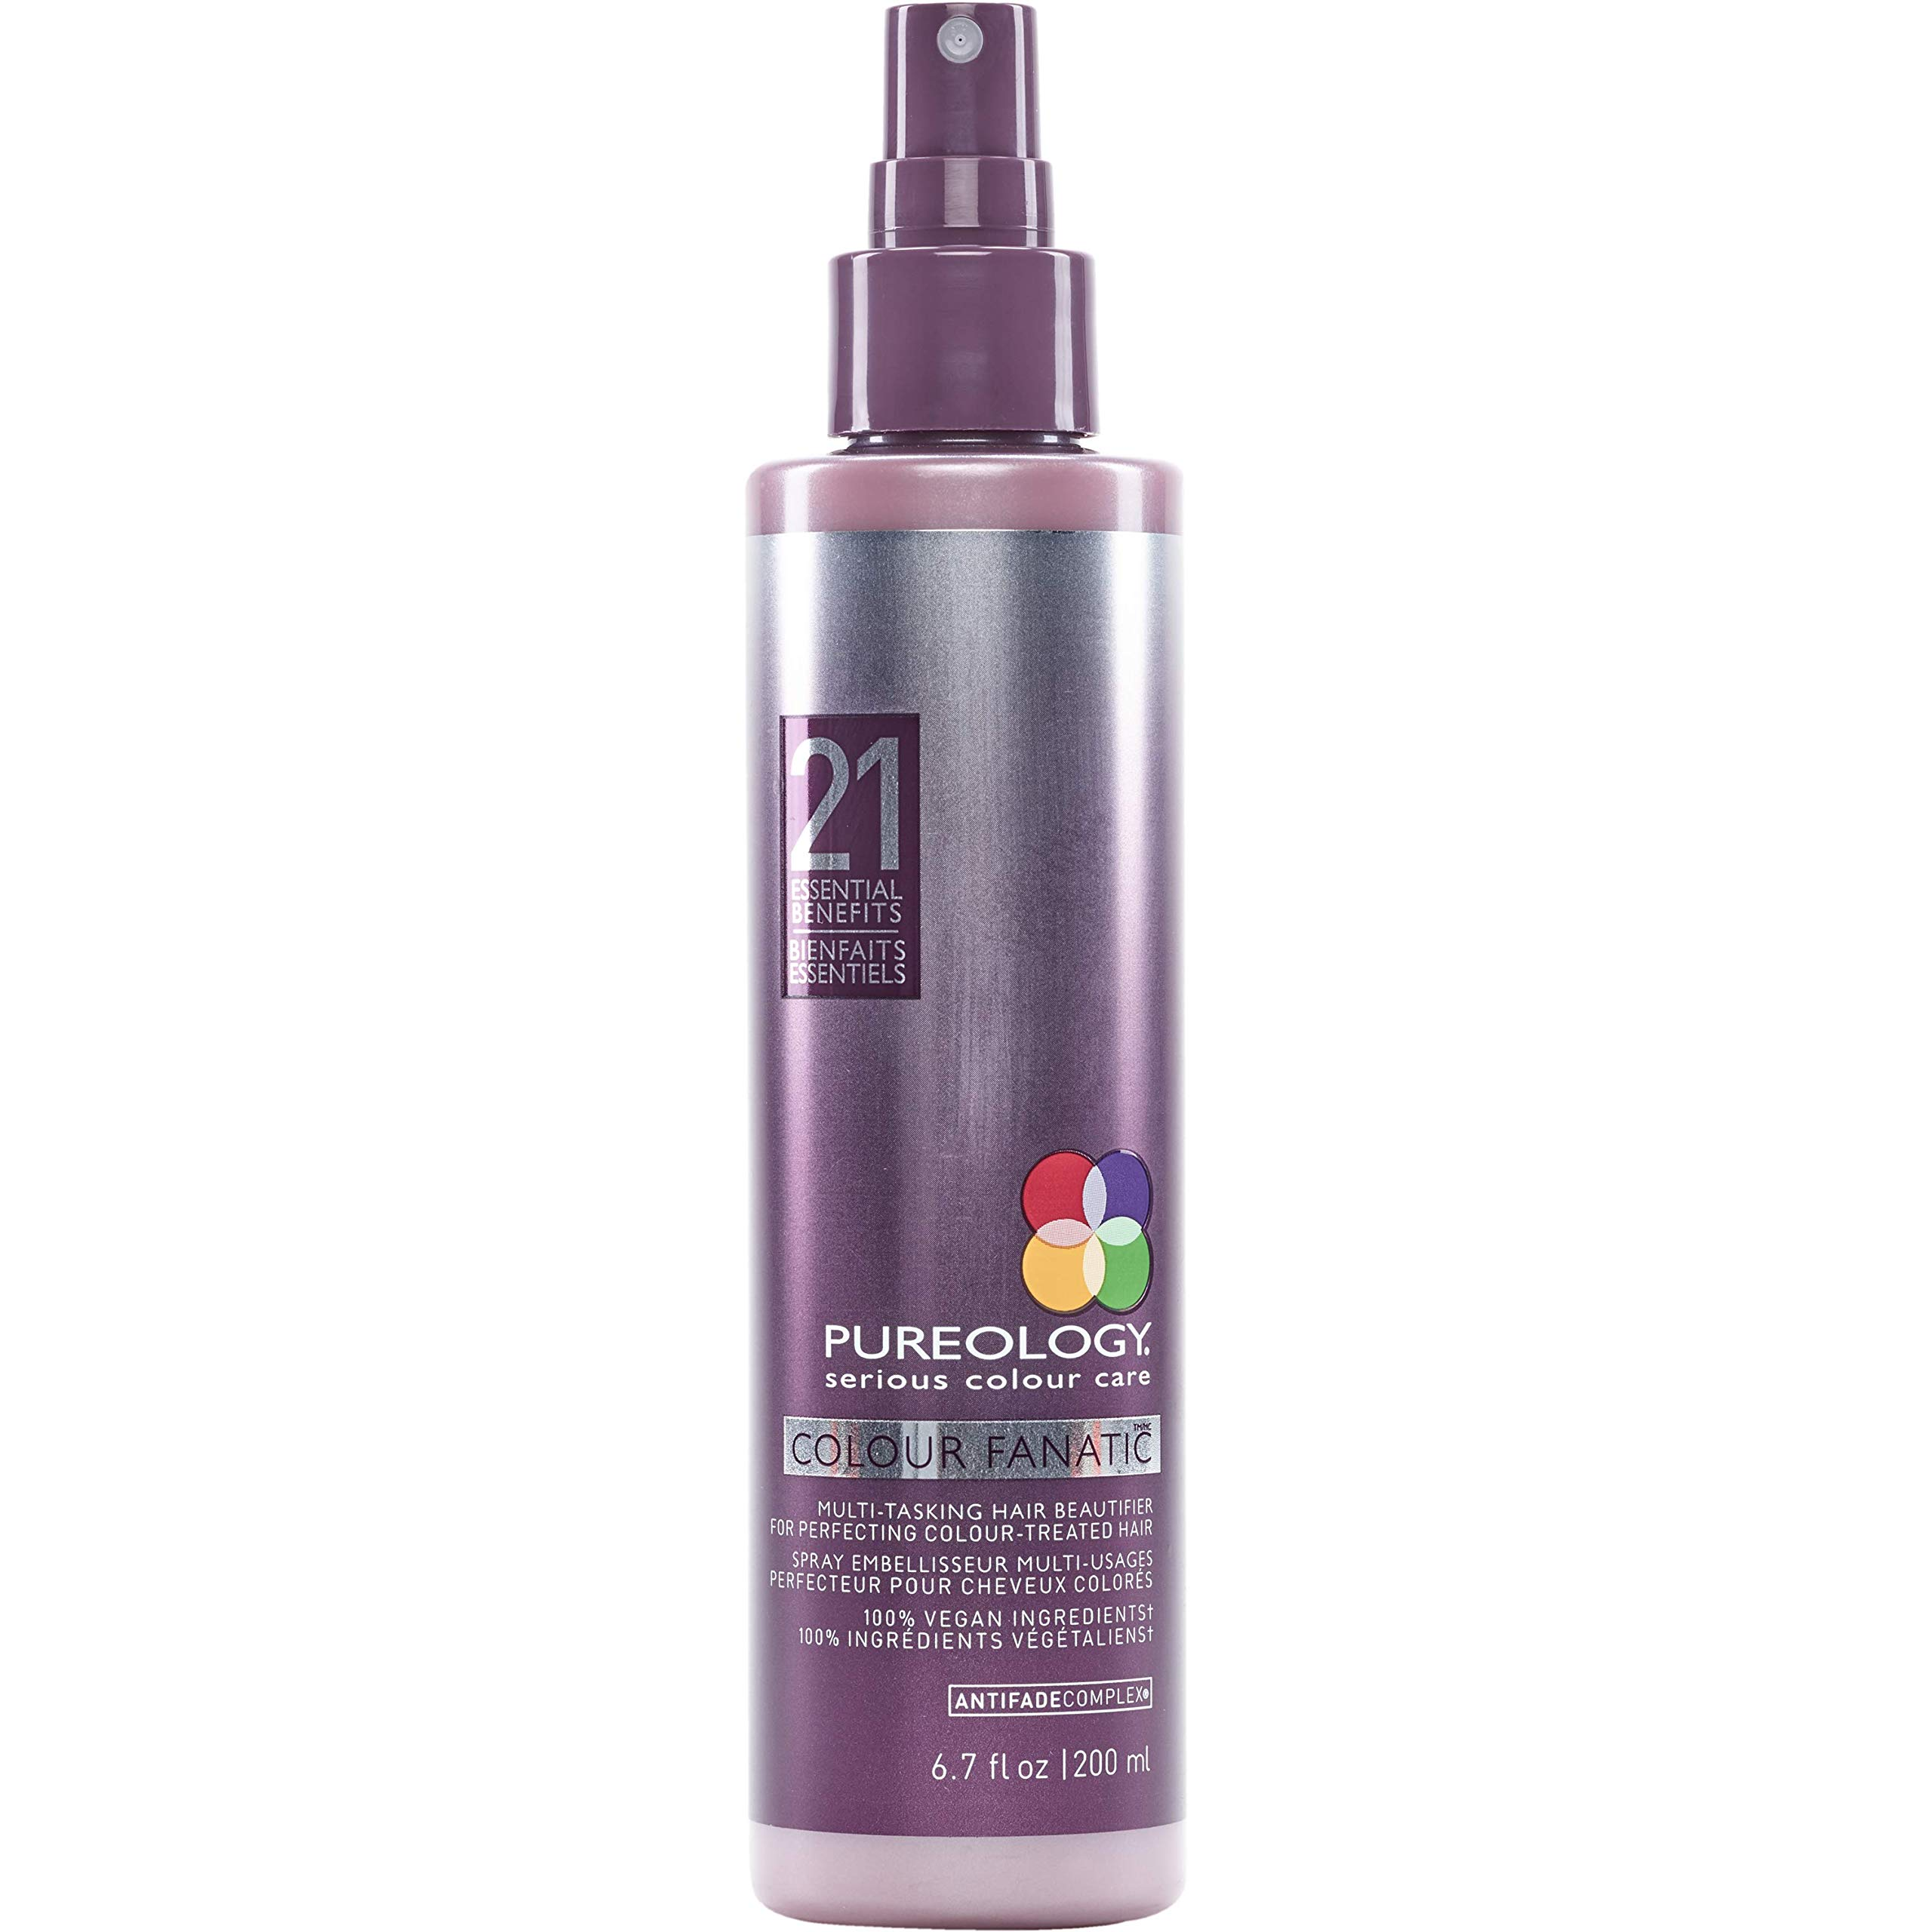 Pureology Colour Fanatic Hair Leave in Treatment Spray, 6.7 Fl Oz by Pureology